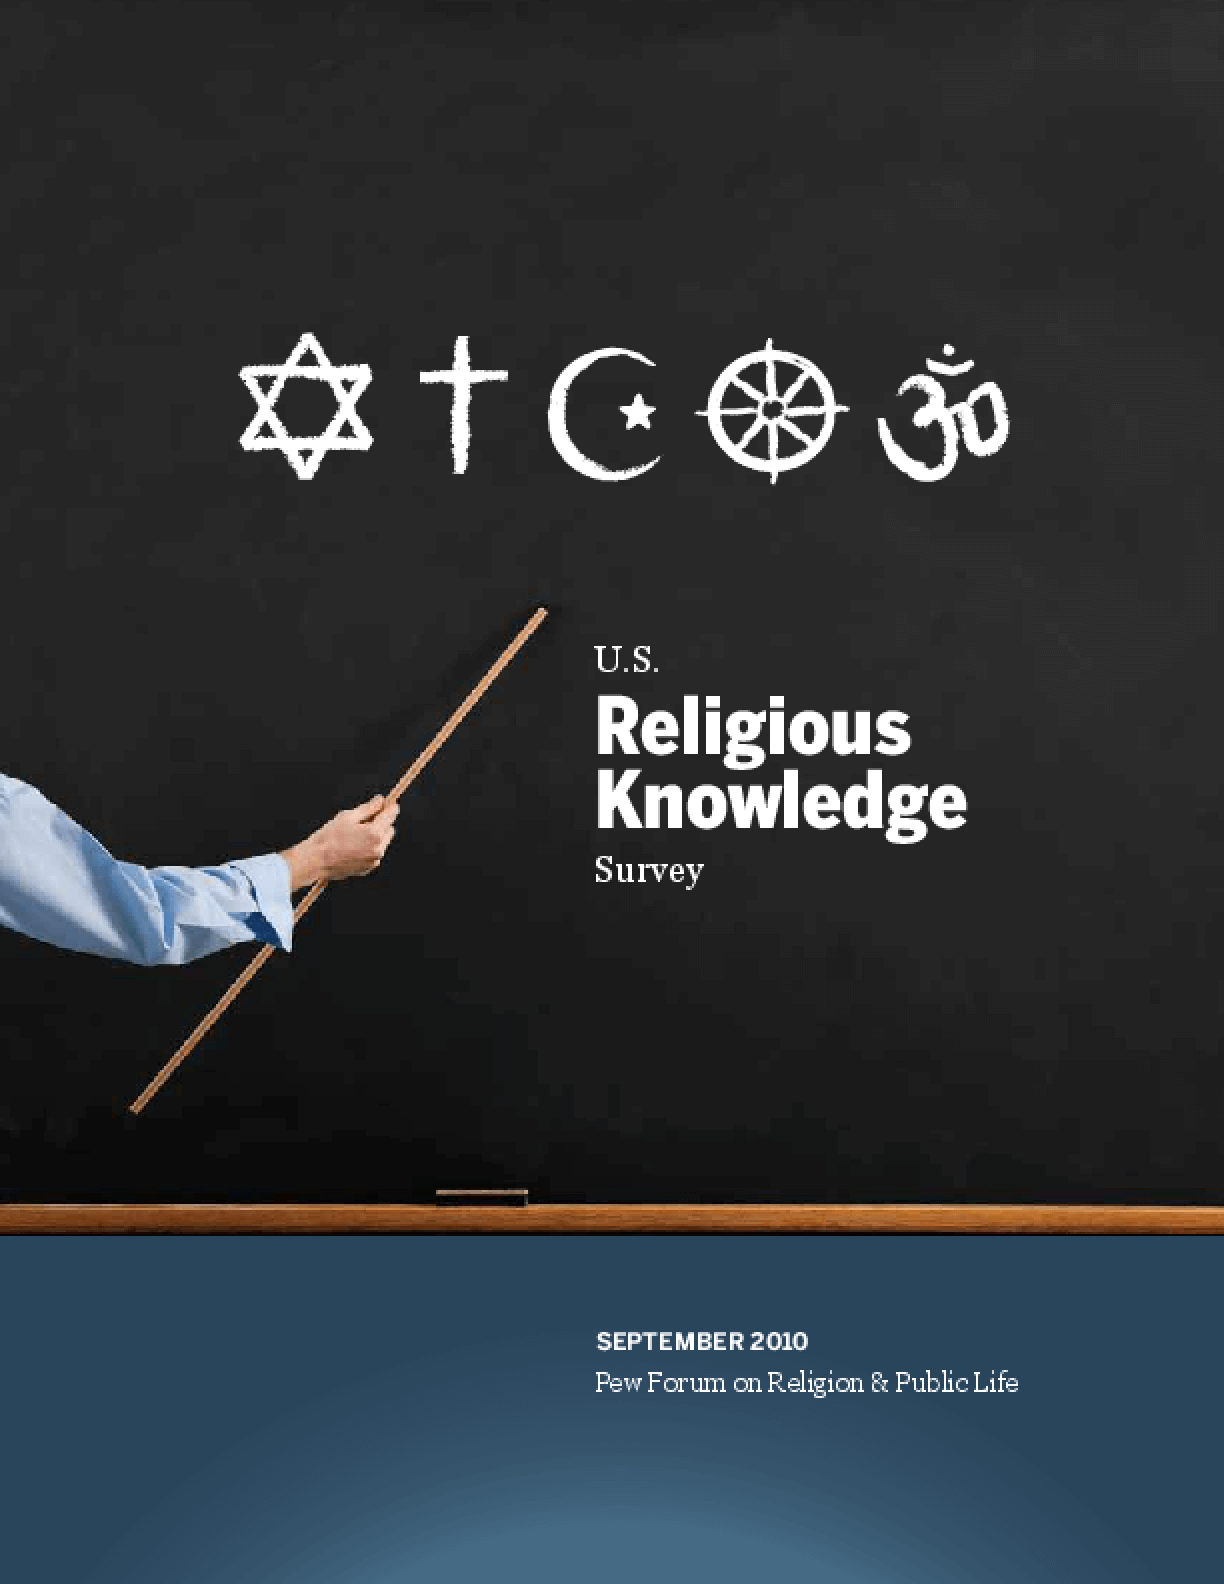 U.S. Religious Knowledge Survey 2010